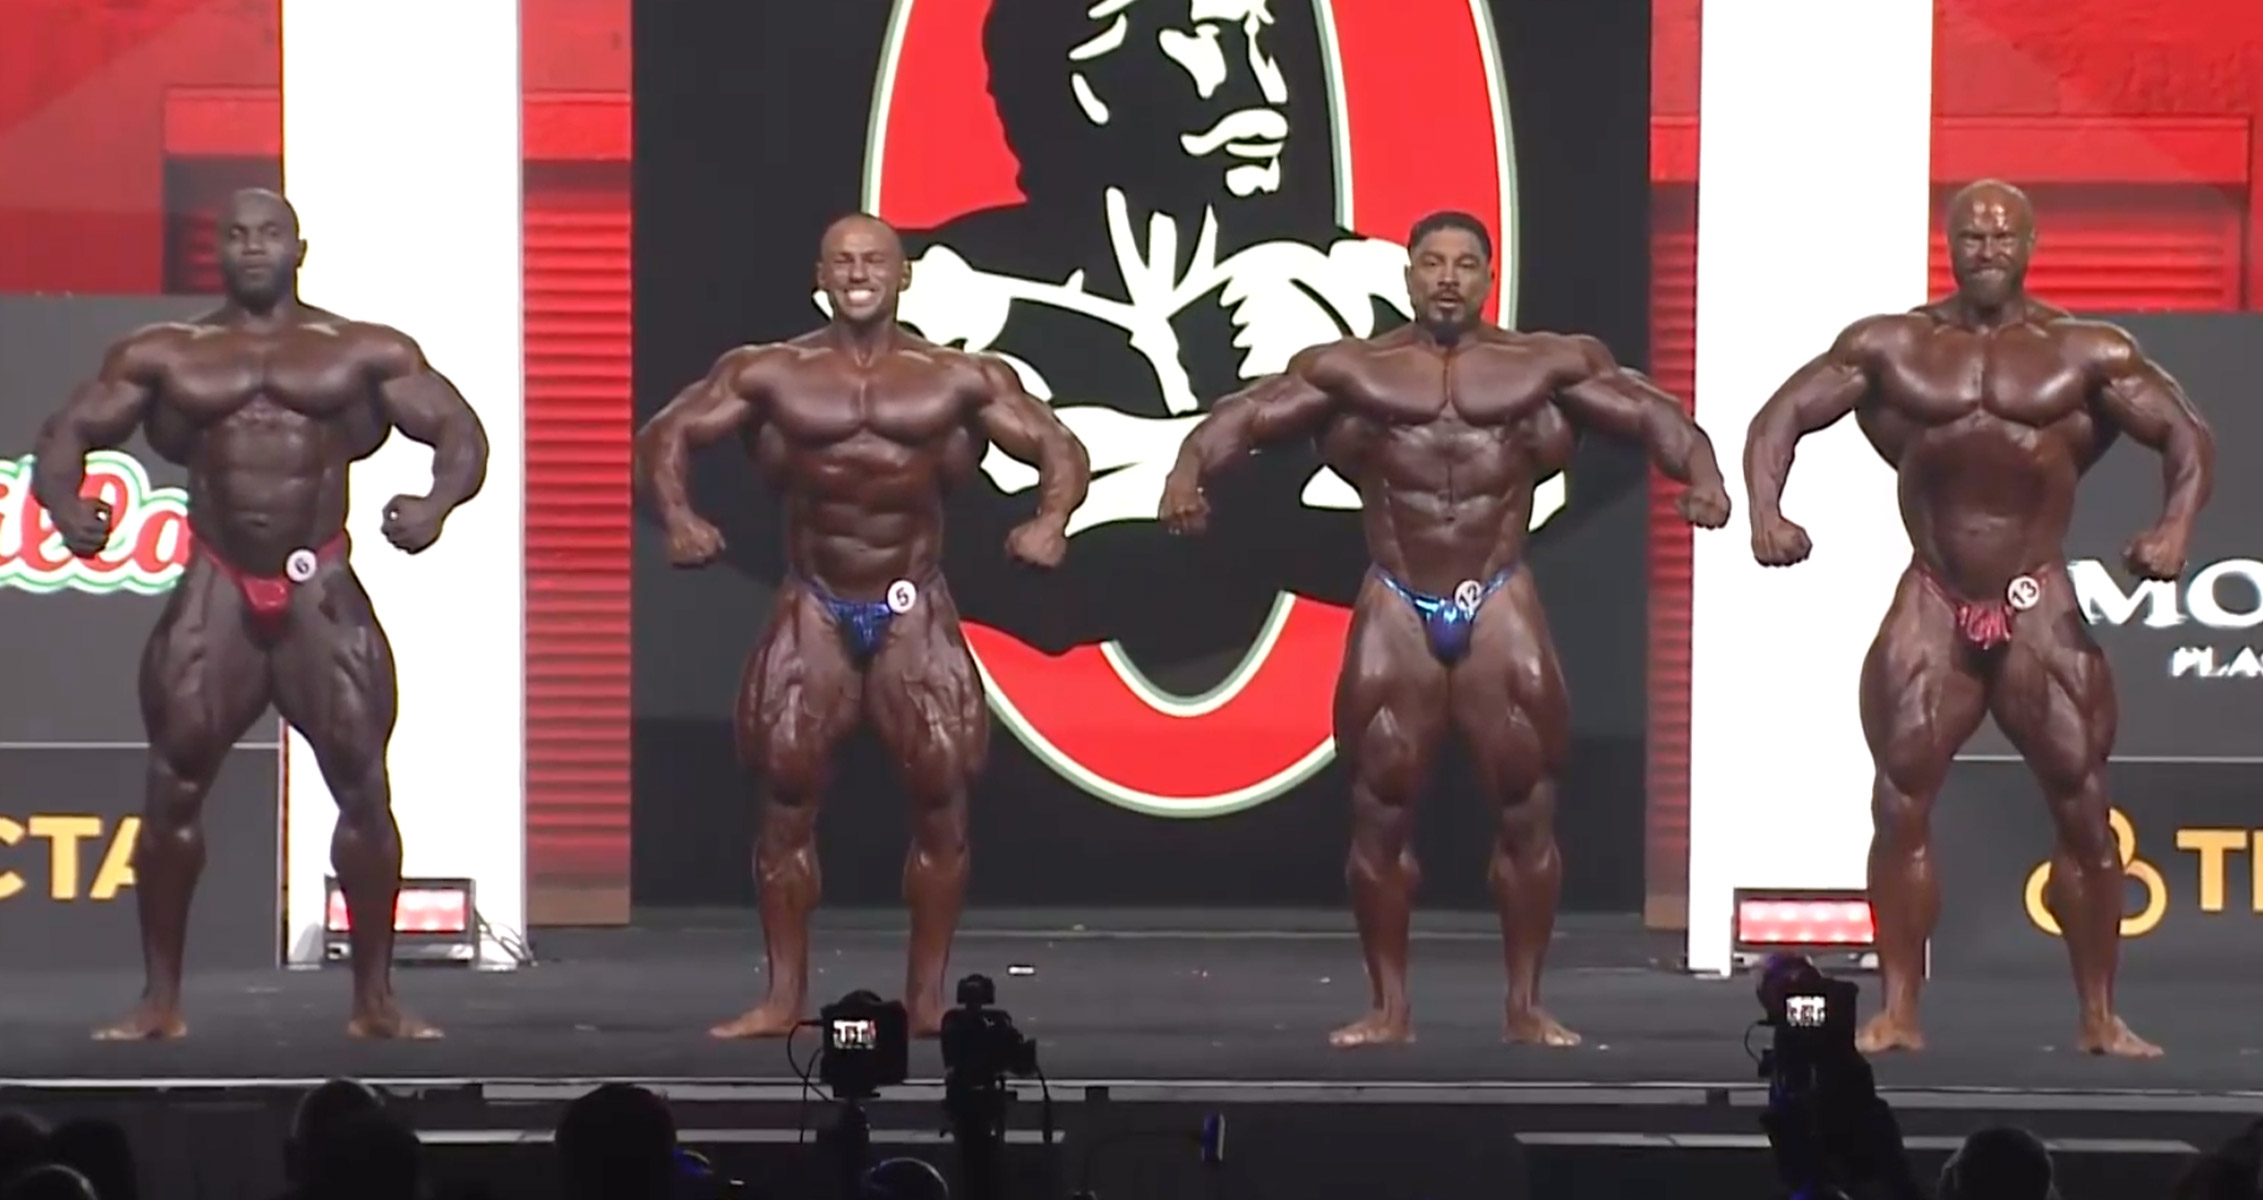 Mr. Olympia Fourth Callout